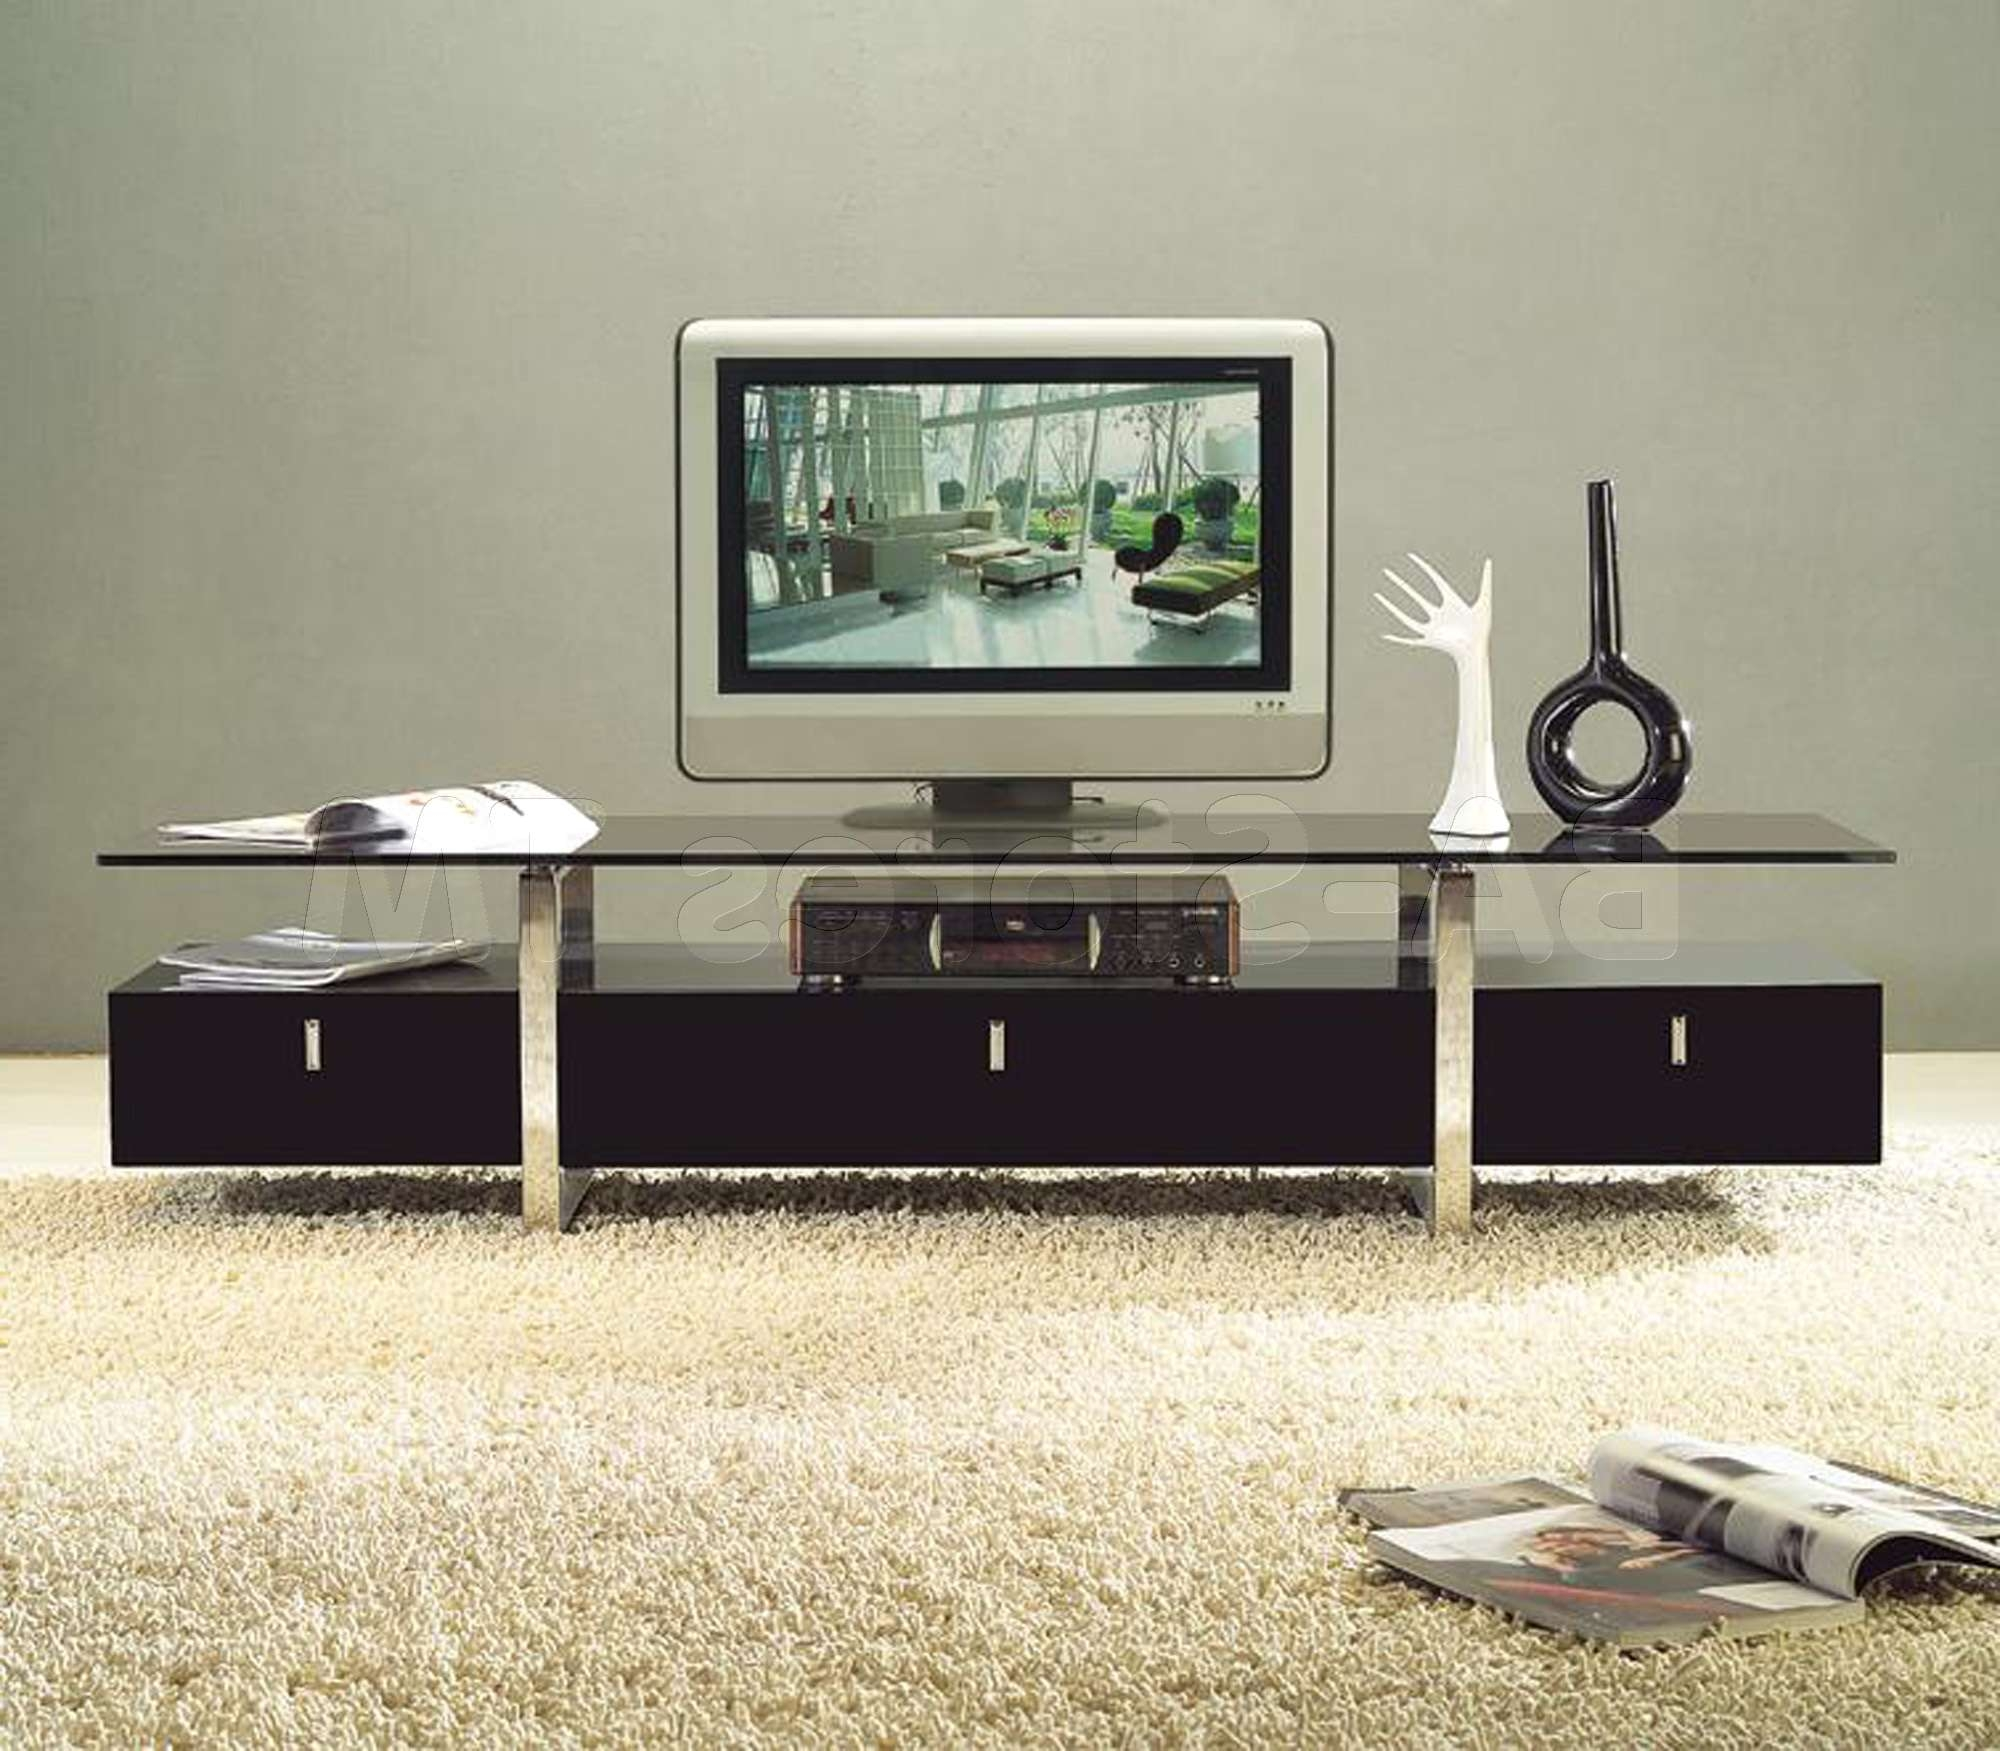 Tv Stands Contemporary Inch On Wheels Ideas Furnitures For Intended For Wooden Tv Stands With Wheels (View 12 of 15)